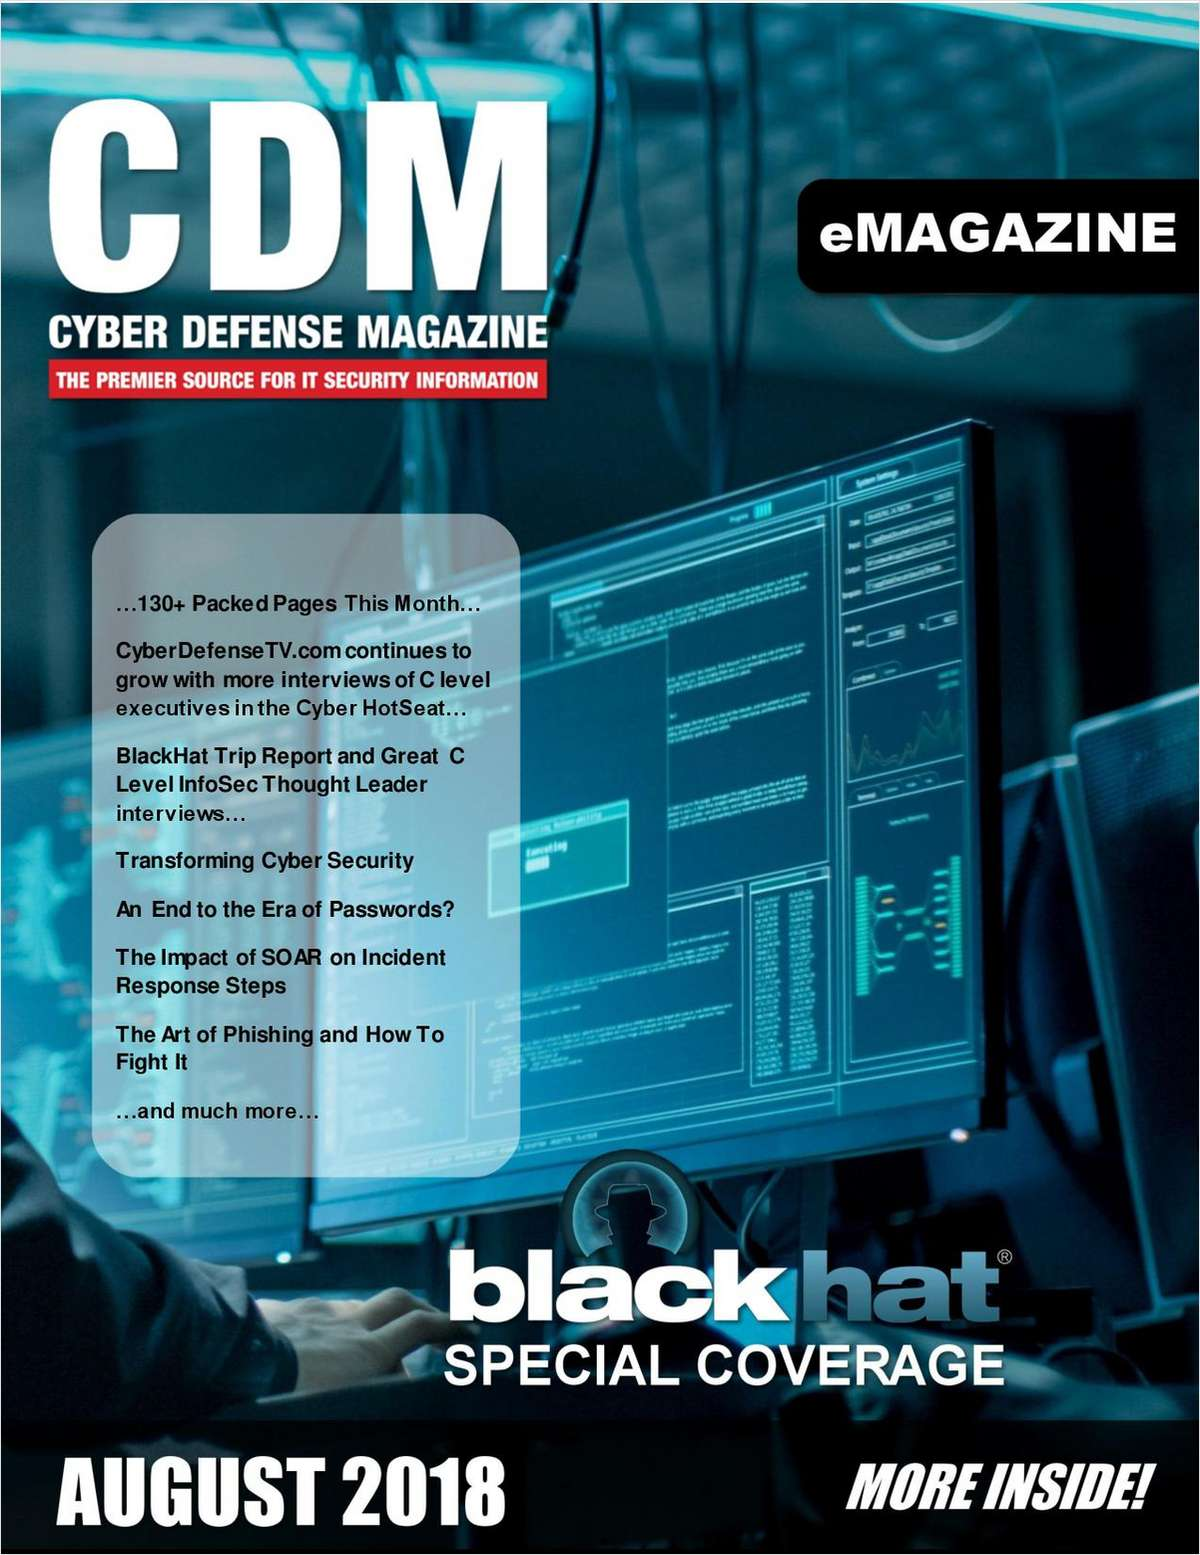 Cyber Defense eMagazine - Transforming Cyber Security - August 2018 Edition